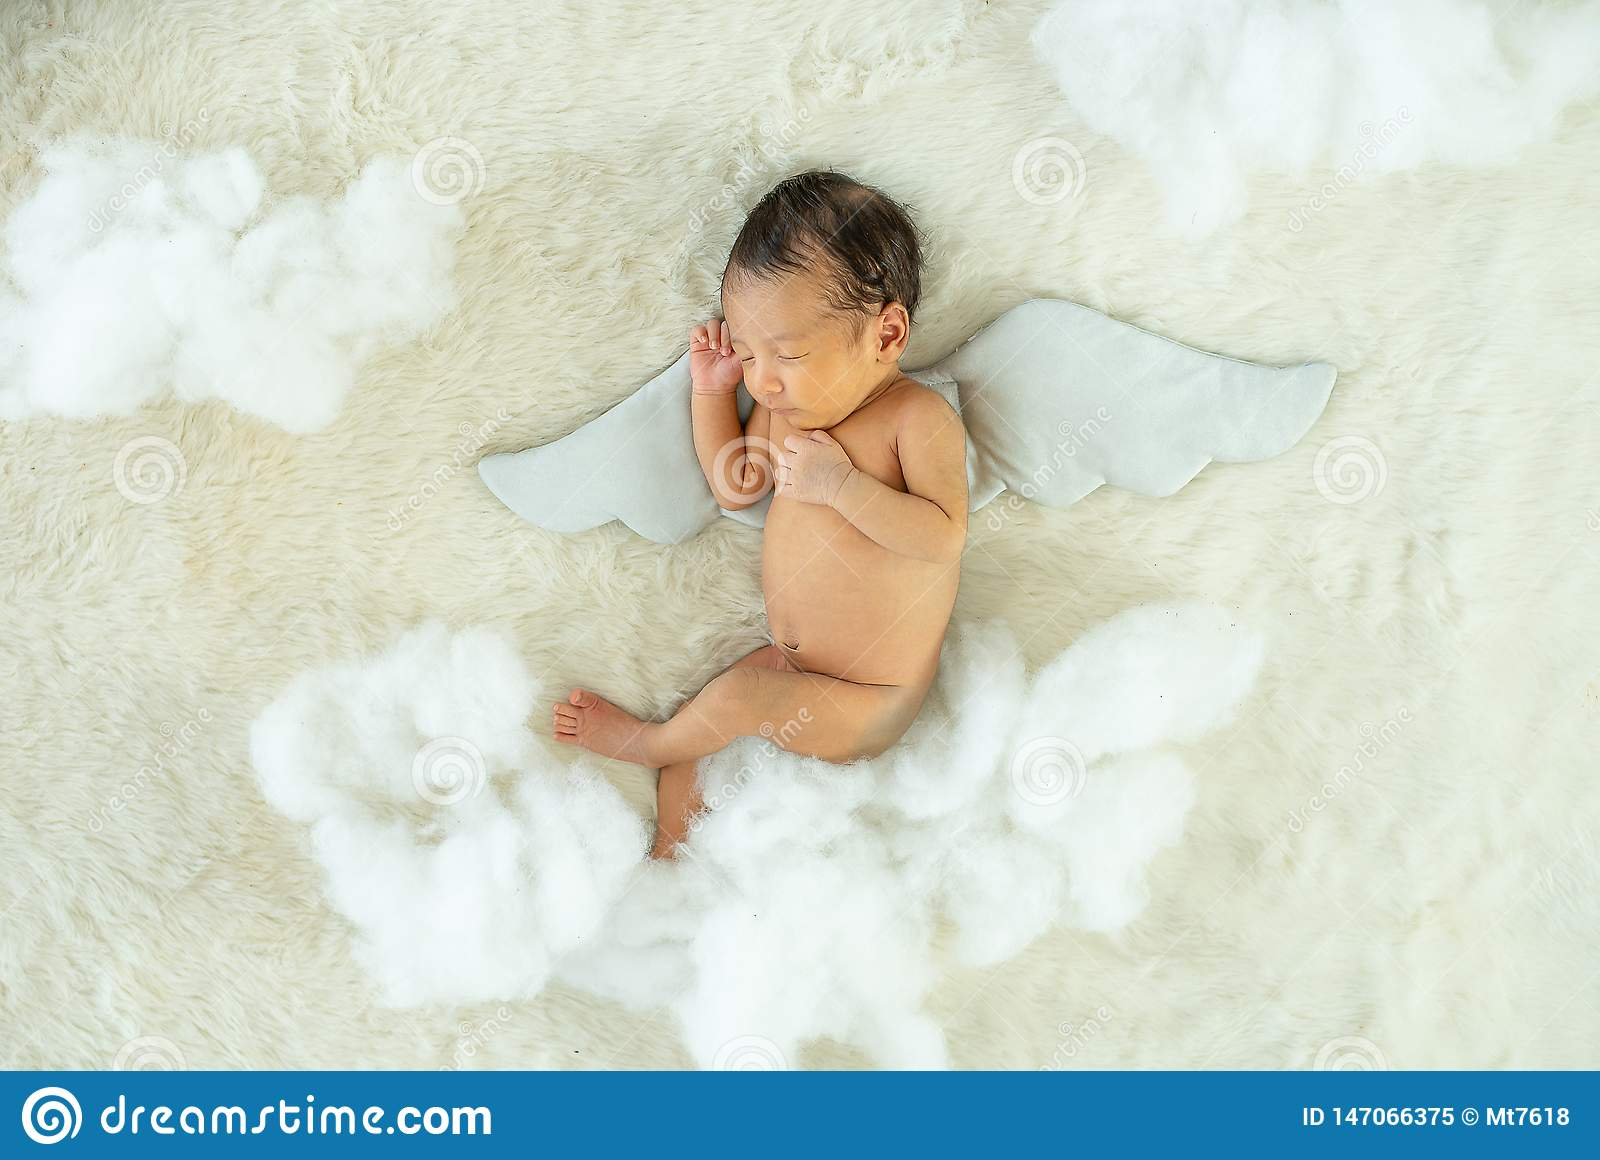 Little newborn baby is sleeping on white bed with wing accessory and fluffy pandas